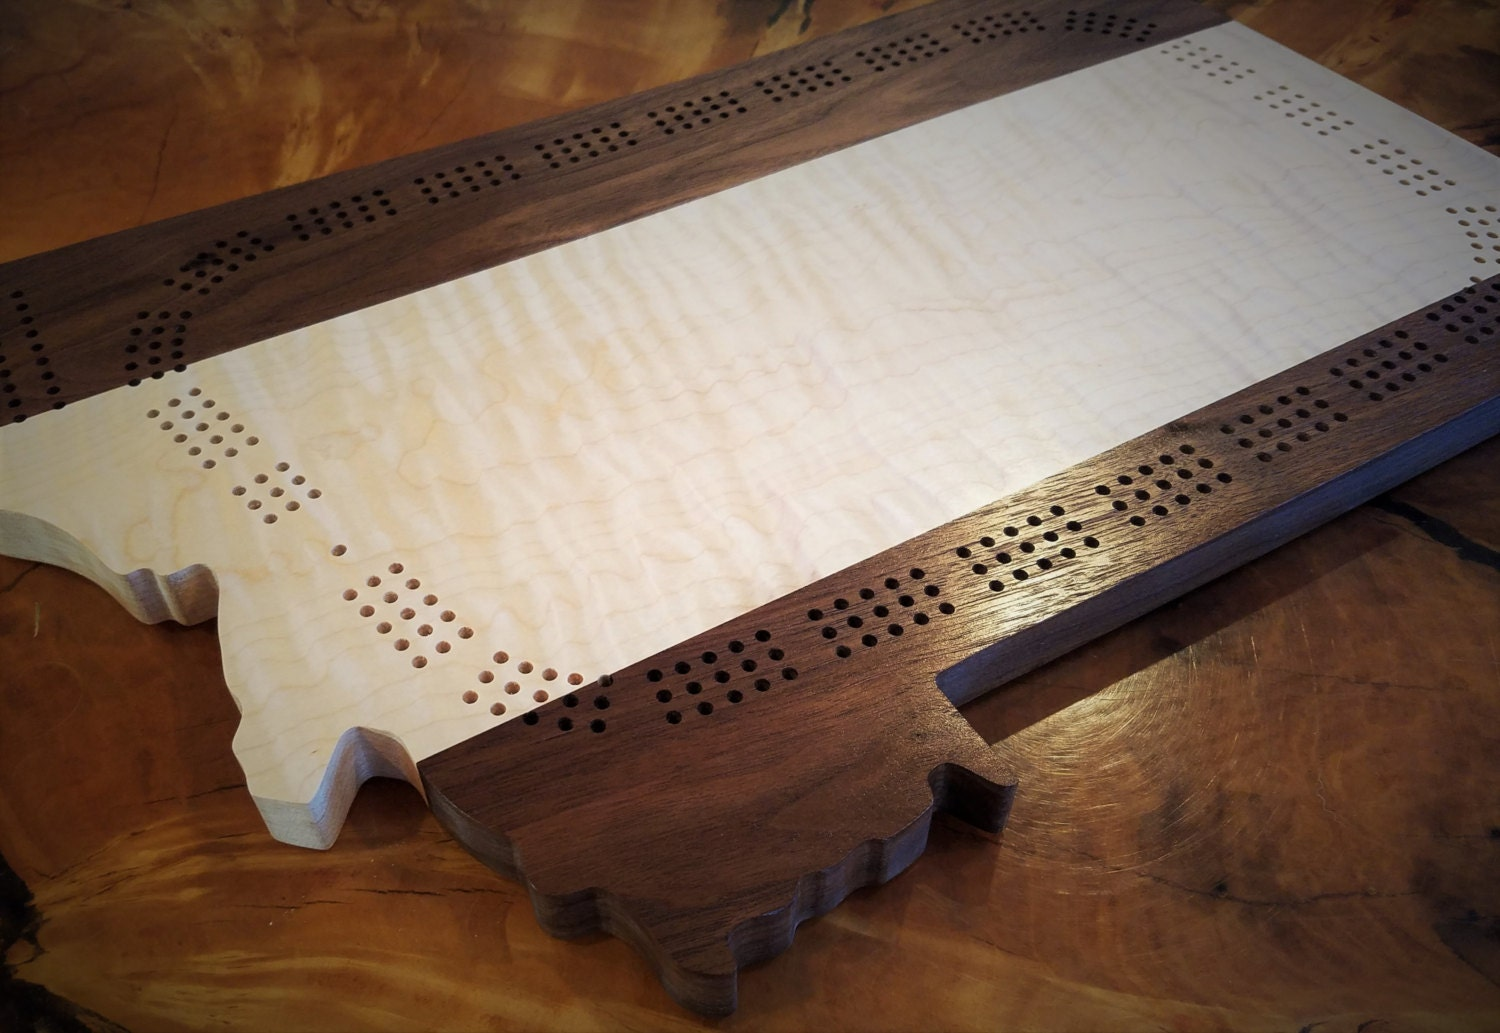 Crib boards for sale uk - Cribbage Board Montana State Wooden Cribbage Curly Maple 3 Track 2 Track Three Track Cribbage 2 Track Cribbage Hardwood Rustic